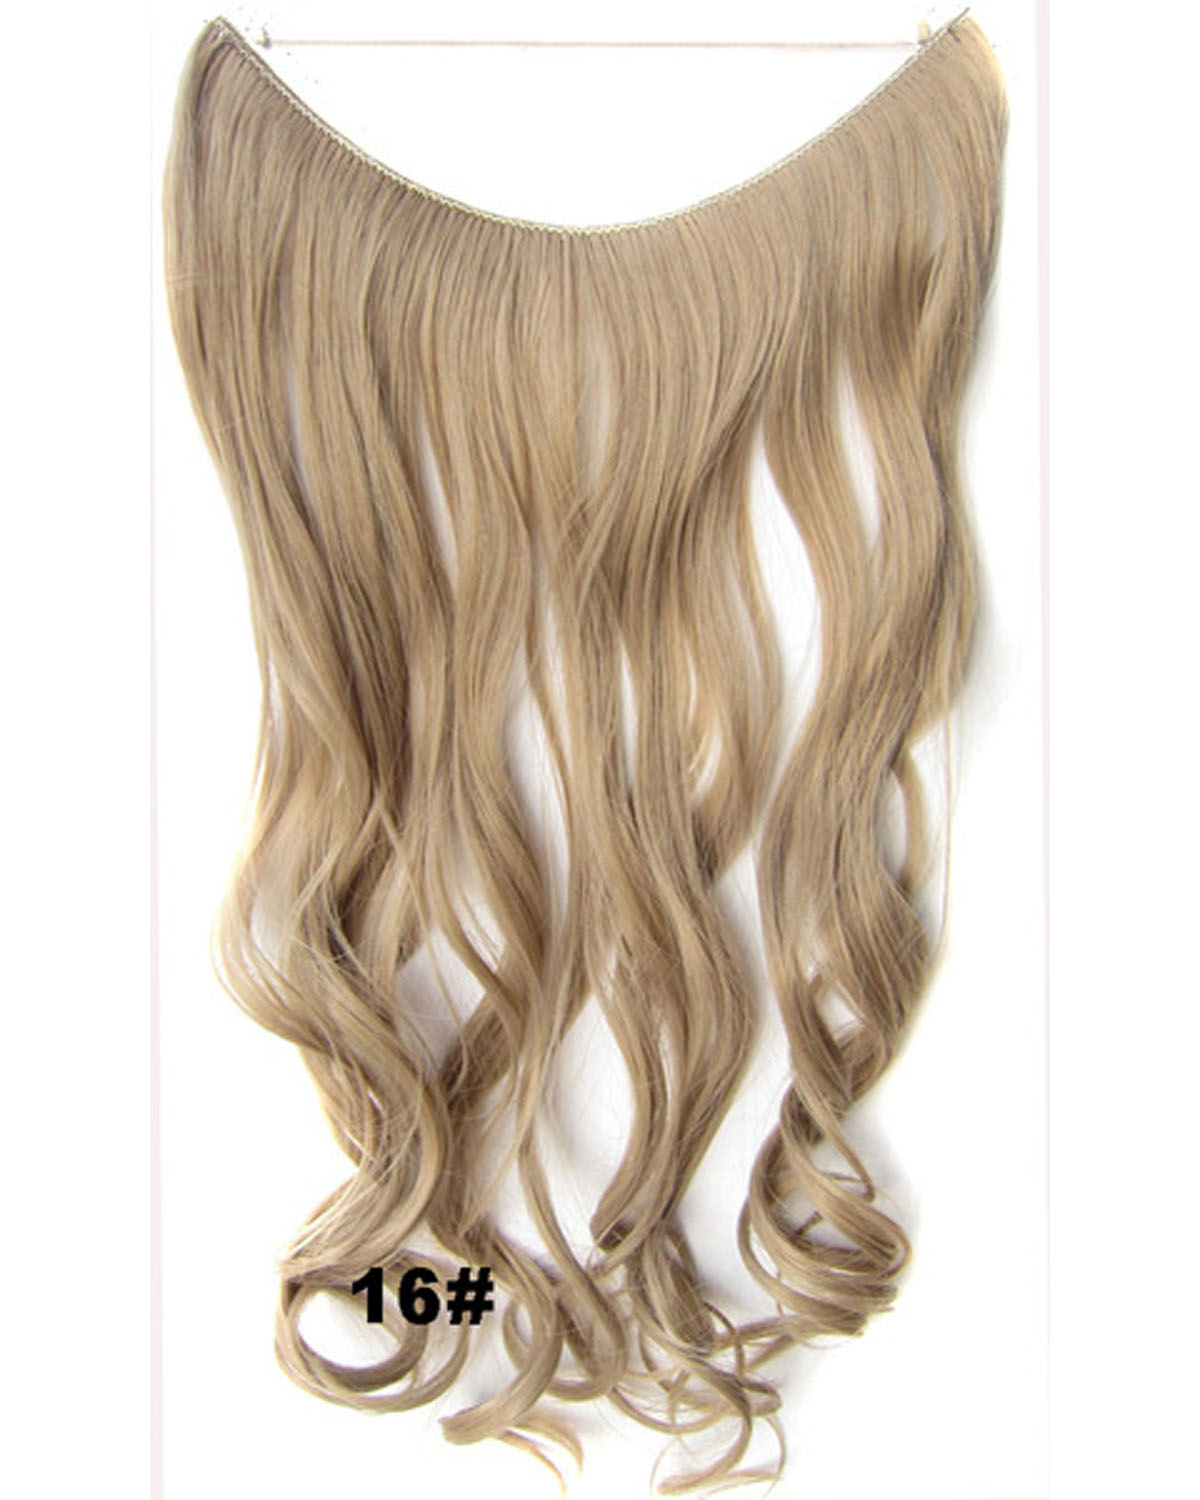 22 Inch Amazing Curly and Long Miracle One Piece Miracle Wire Flip in Synthetic Hair Extension 16#